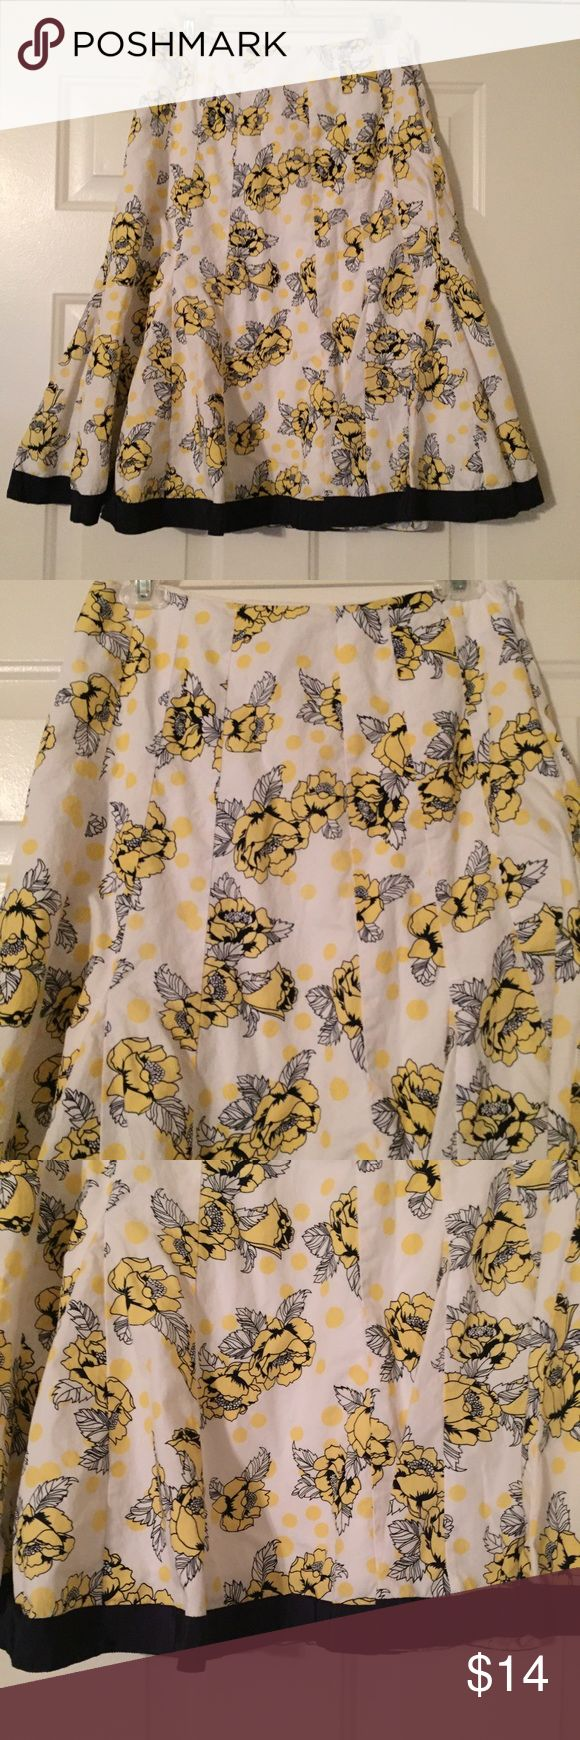 "Calf length skirt - career or casual Chadwick's navy, white, yellow skirt with an adorable floral pattern.  Calf length skirt - career or casual. Measurements:  14"" waist measured lying flat across the front. 26"" Length. SZ 8 Chadwicks Skirts"